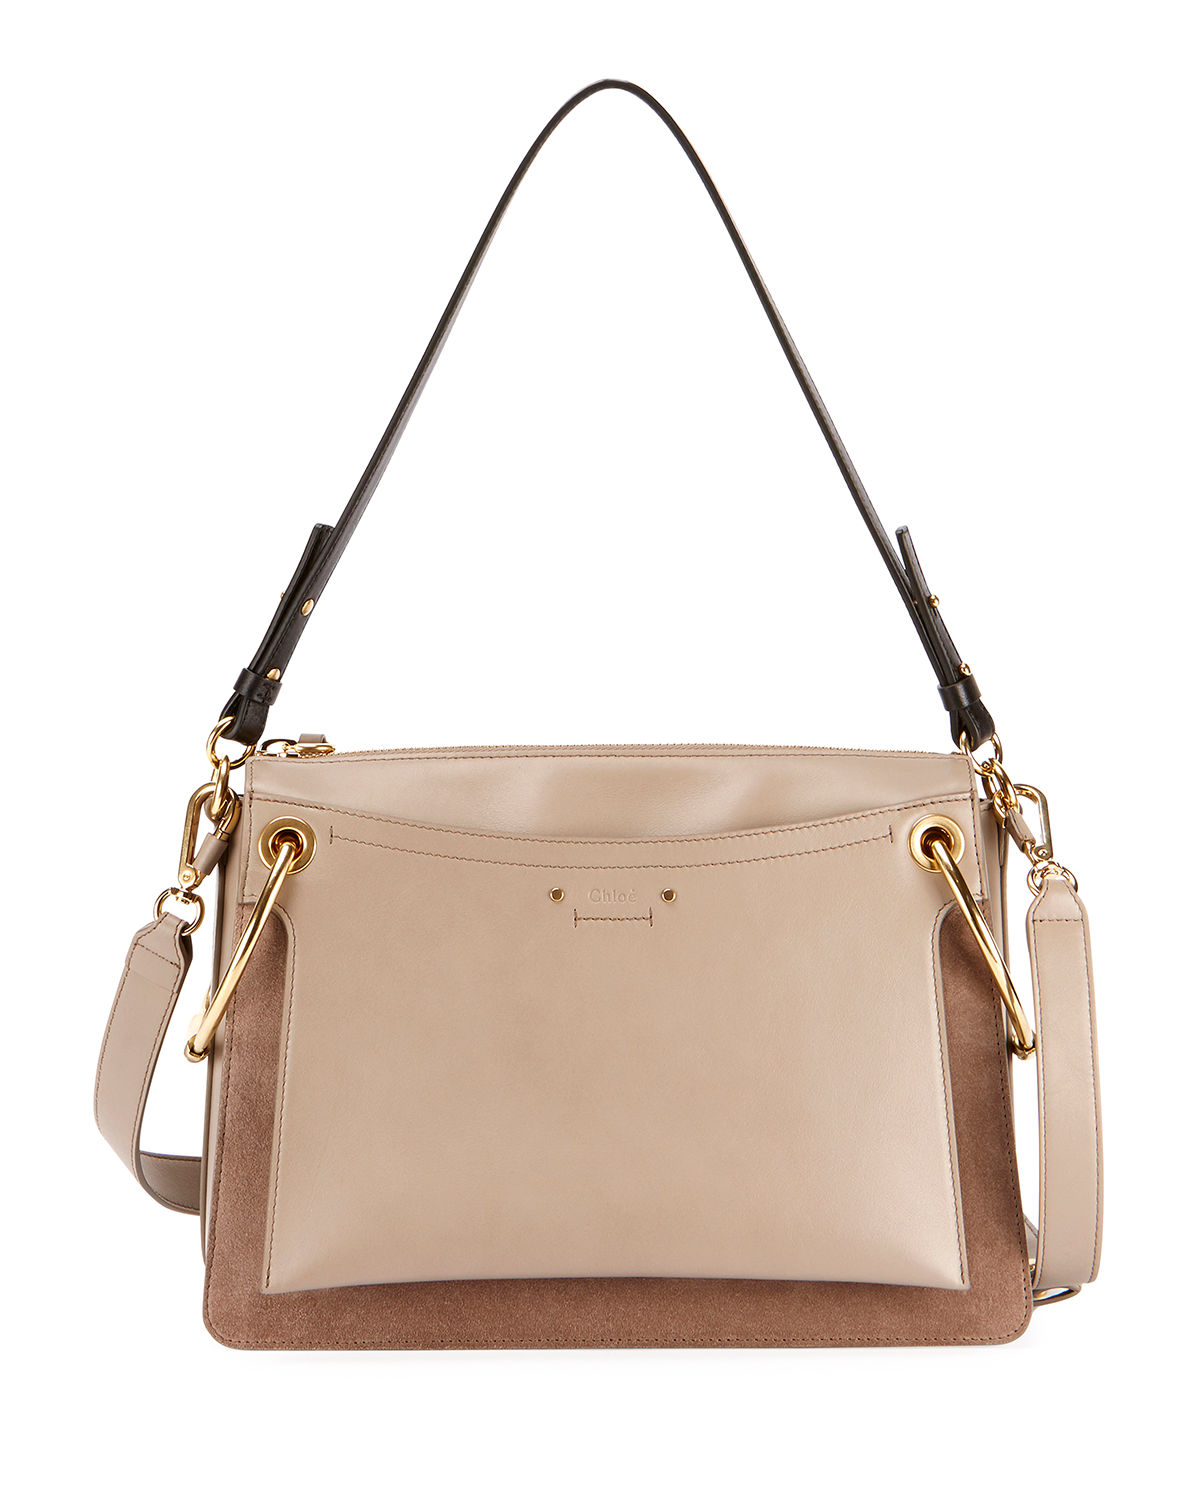 Chloe Roy Leather Shoulder Bag  e2babc2bae18e